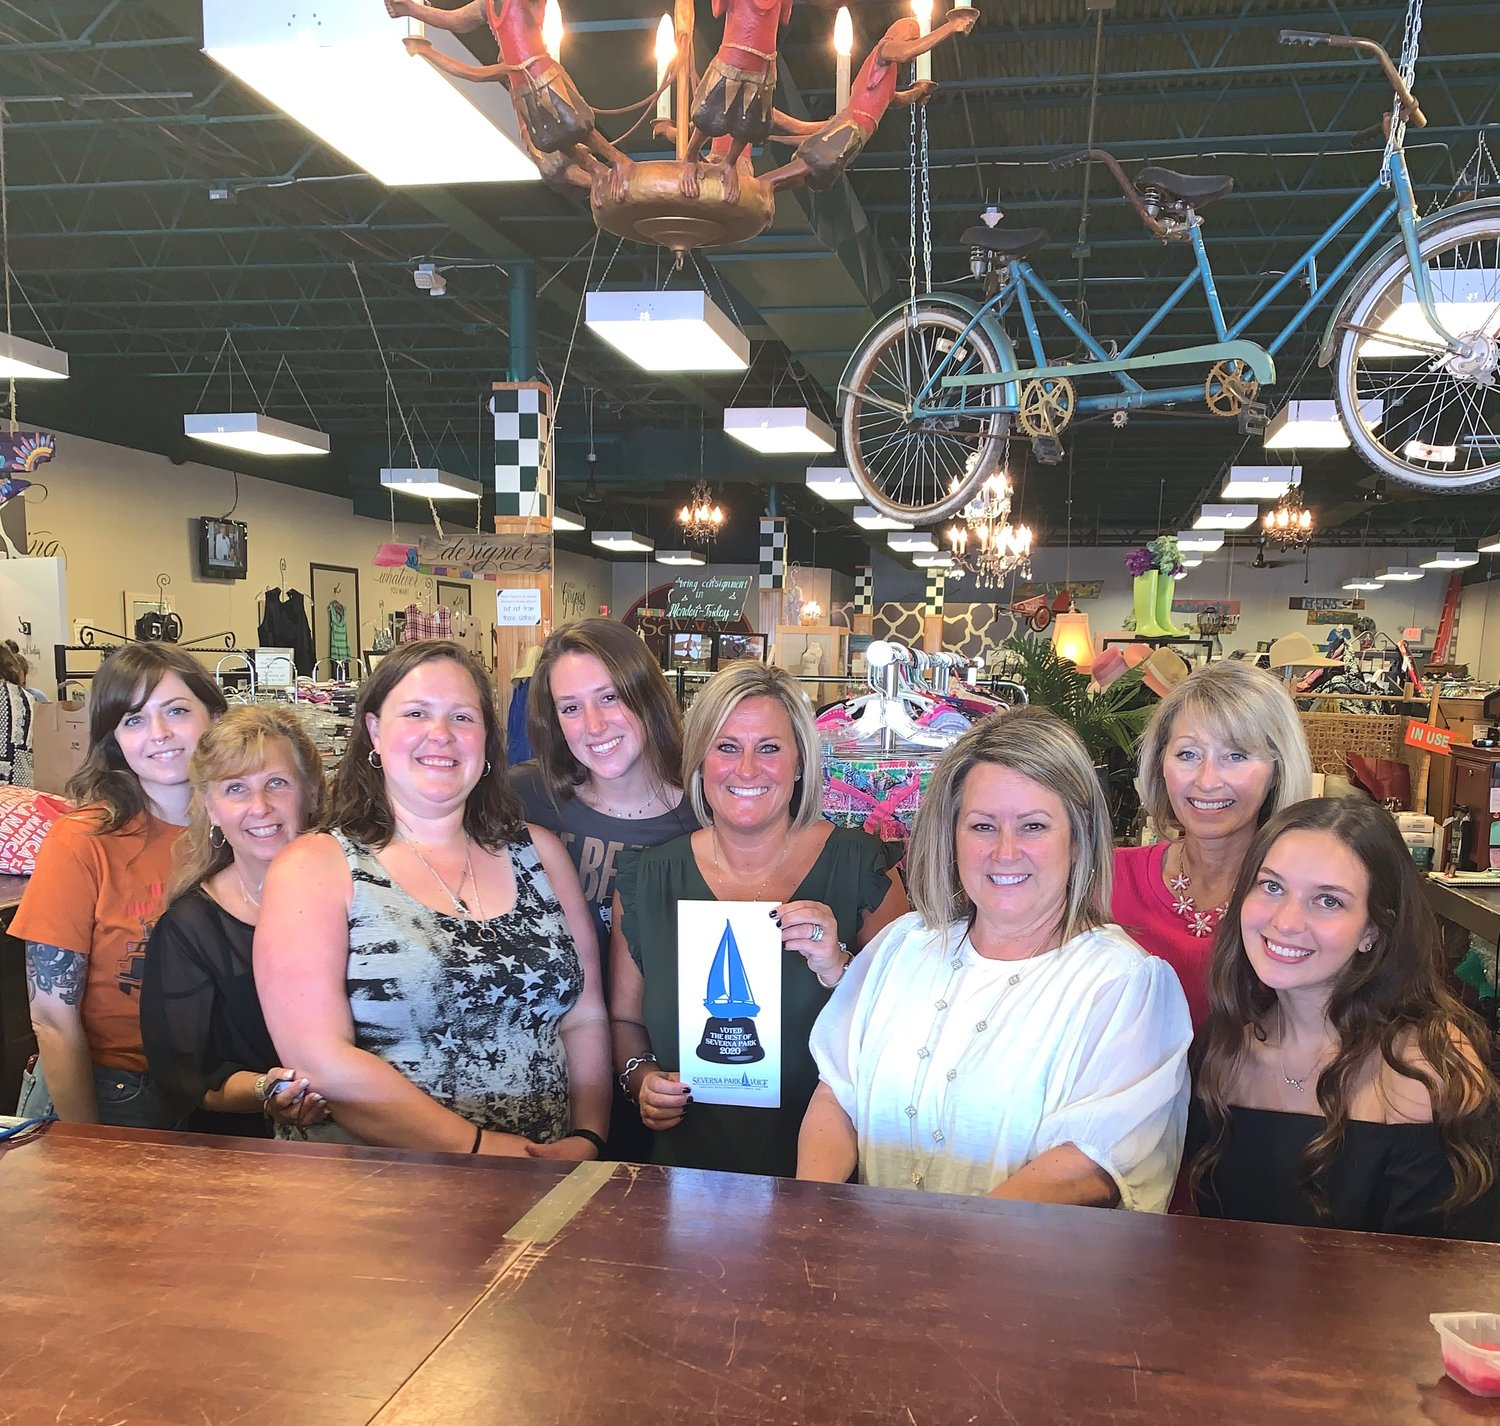 The Savvy Consignment staff was proud to see their workplace win Best Consignment Shop.